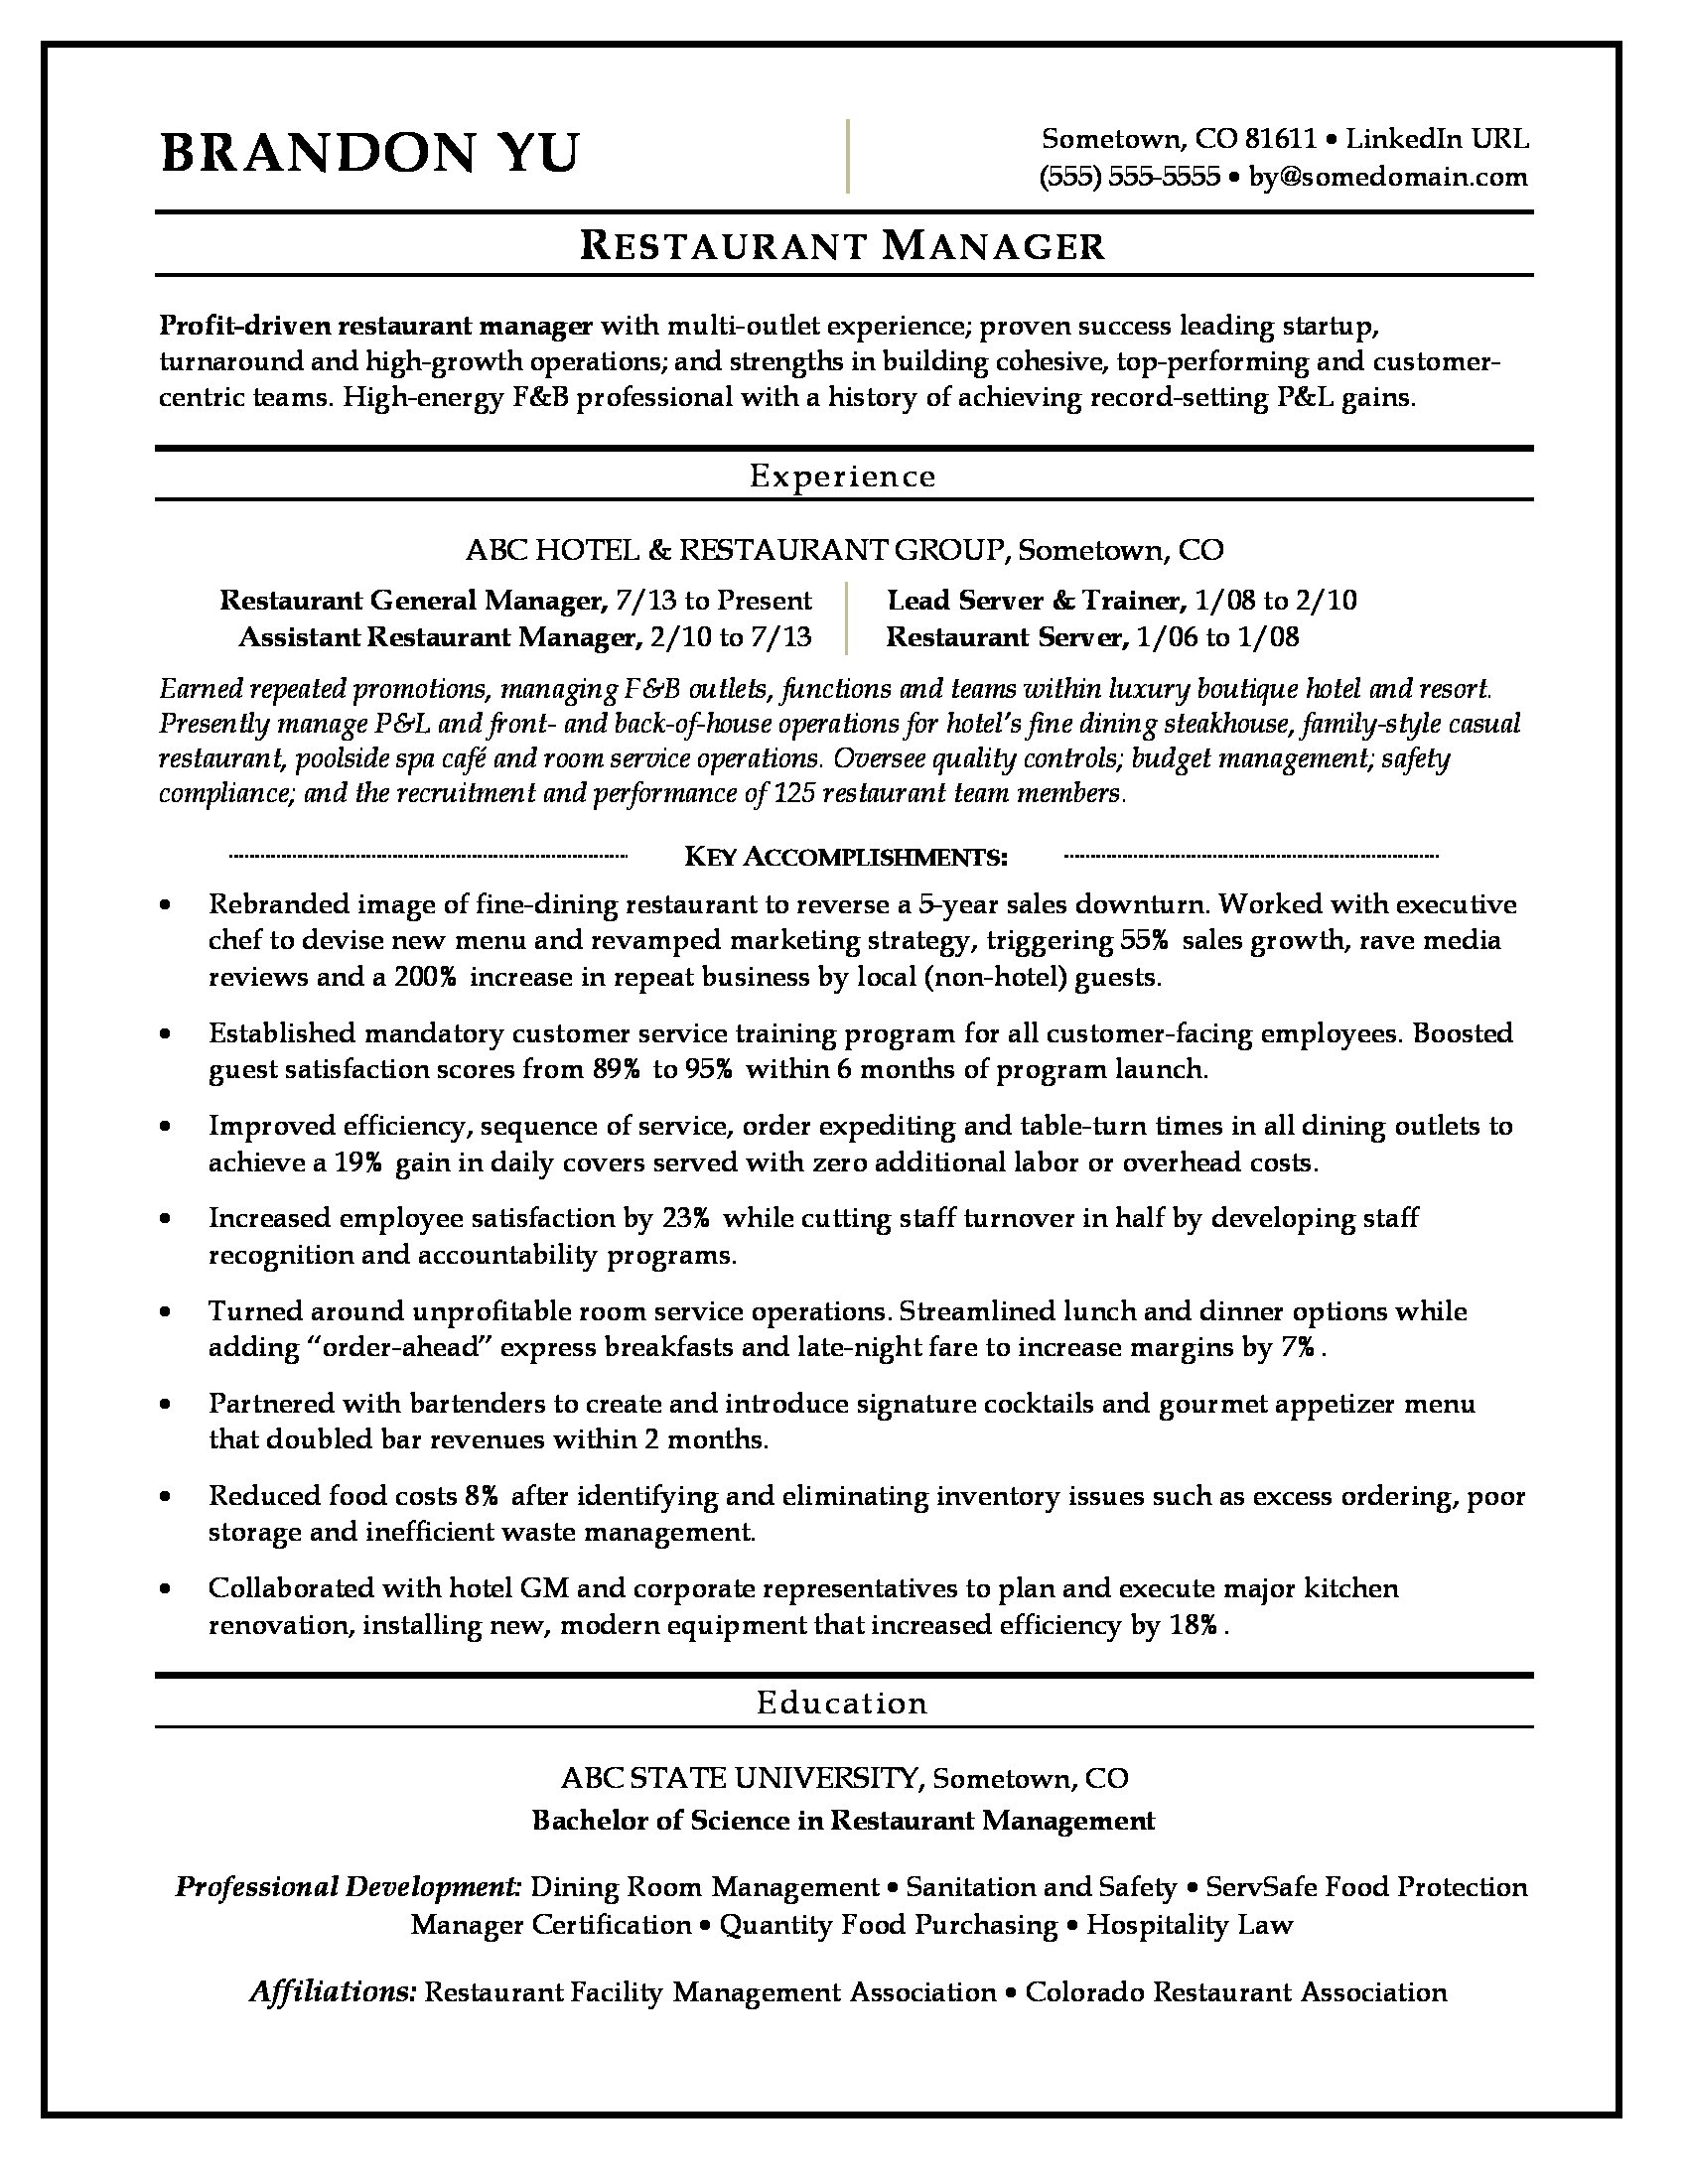 sample resume for a restaurant manager - Restaurant Resume Template